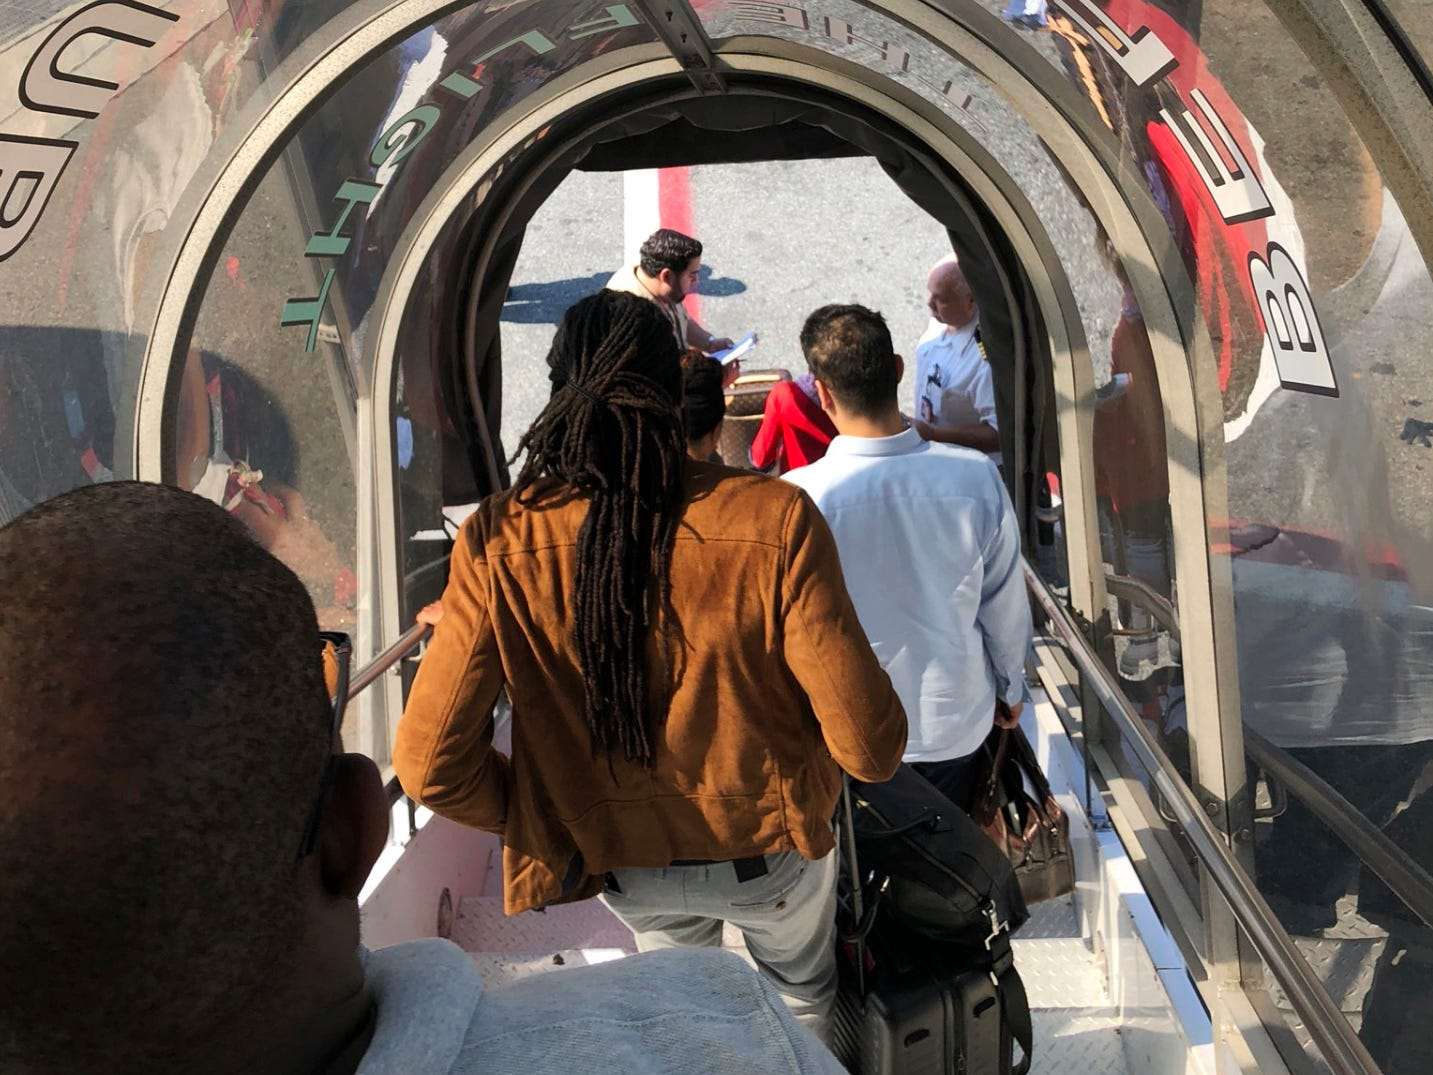 Passengers leave an Emirates airplane at New York's Kennedy Airport amid reports of ill passengers aboard a flight from Dubai on Wednesday, Sept. 5, 2018. (Larry Coben via AP) ORG XMIT: NYAG305